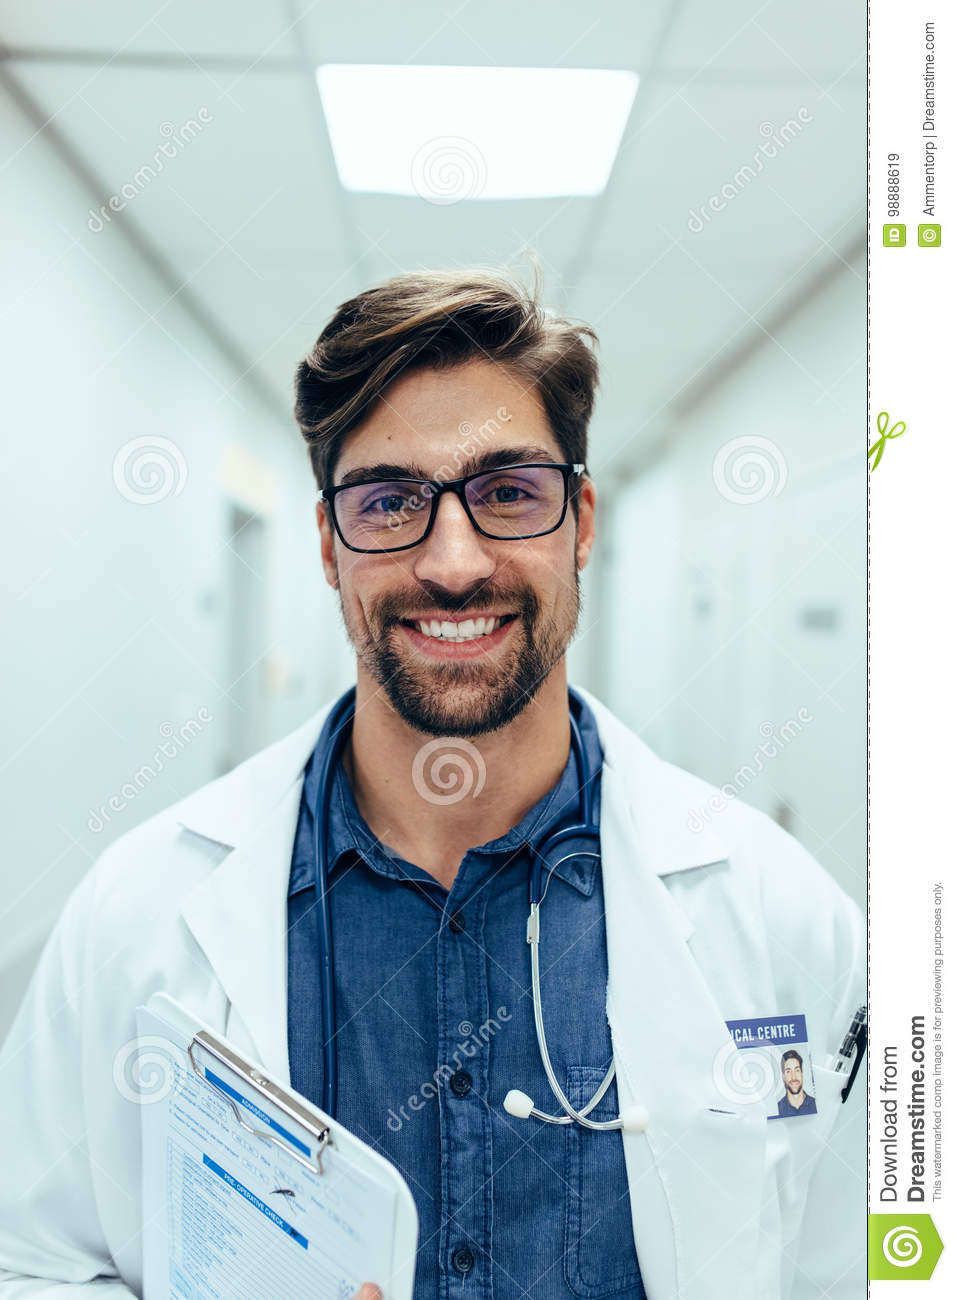 Experienced male doctor in hospital